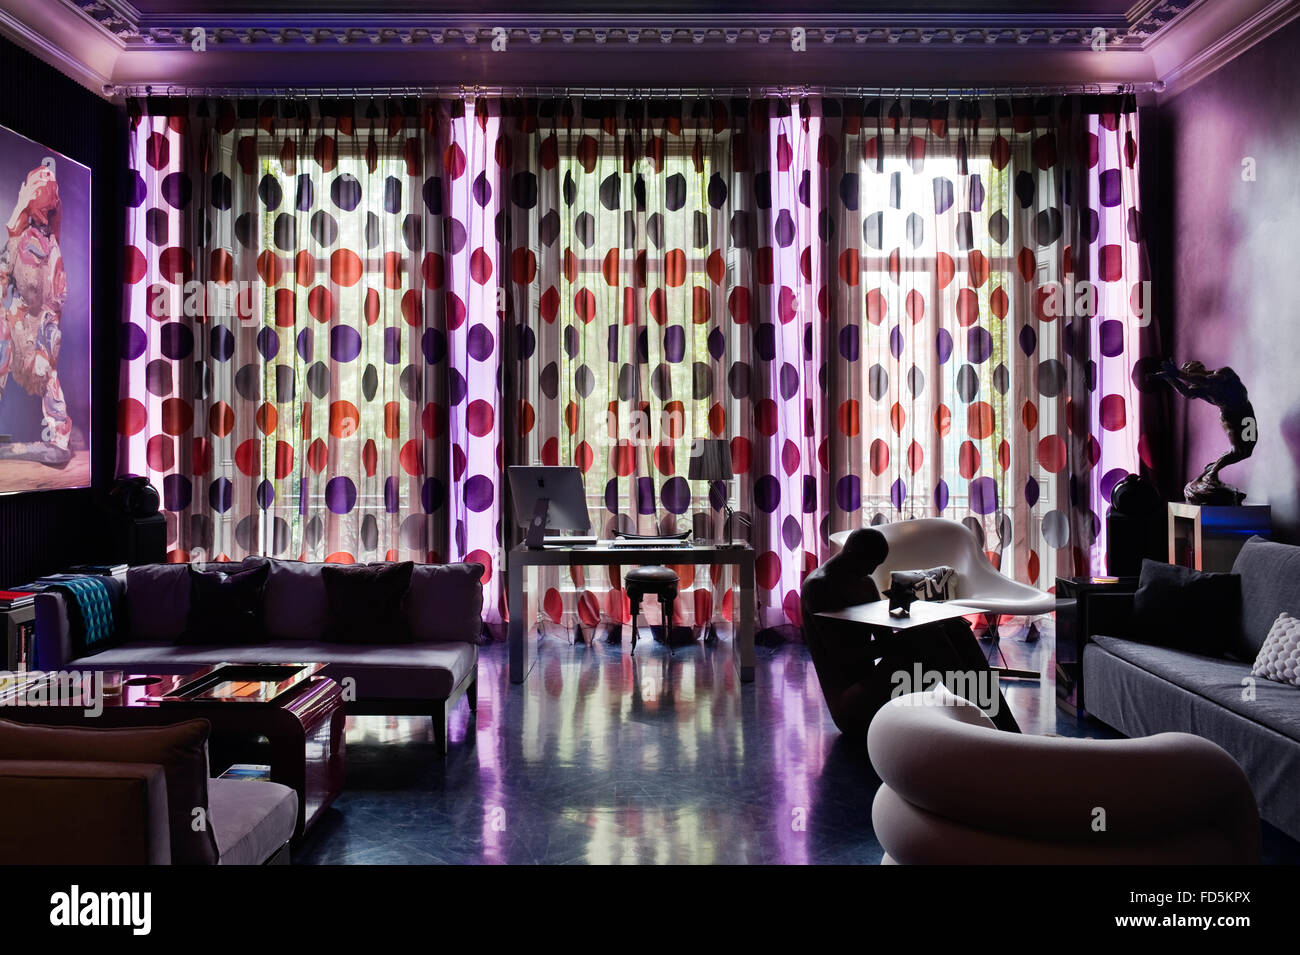 Desk in window backlit with red and purple spotted curtains and blue neon light, London apartment - Stock Image